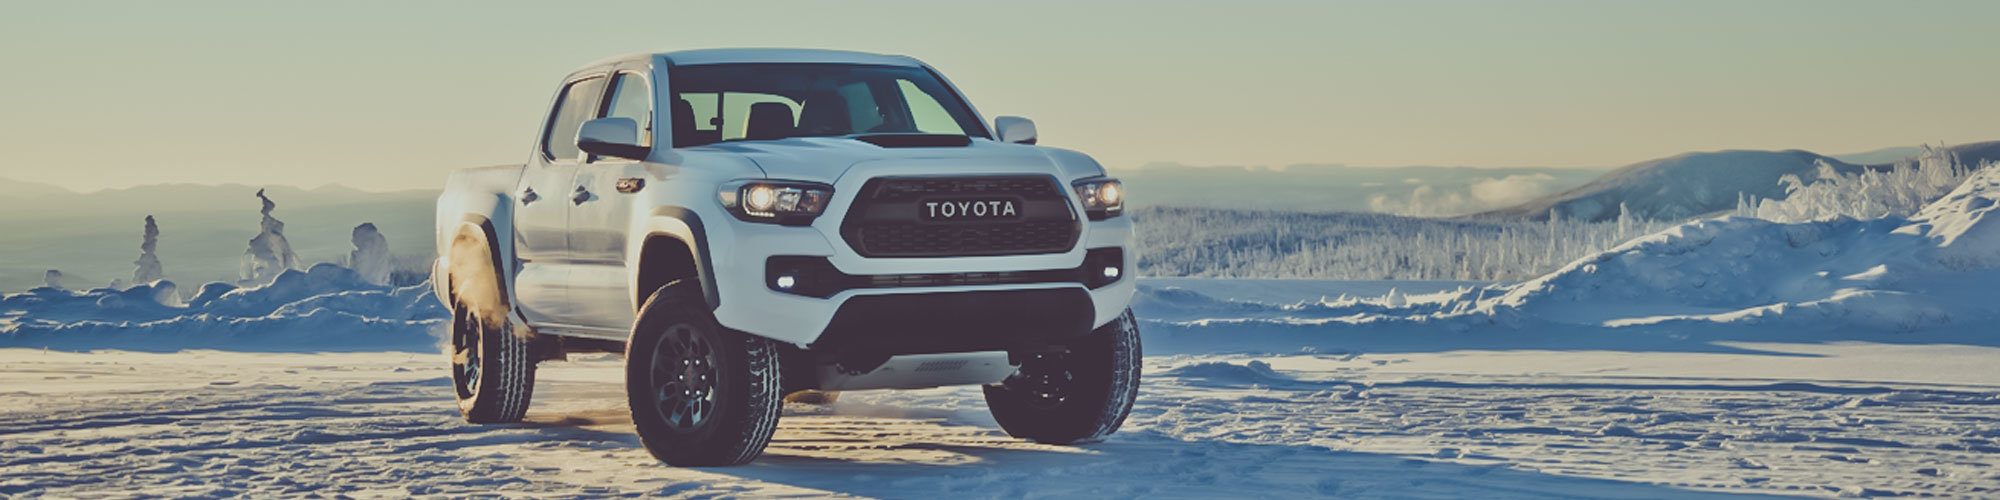 Toyota Tacoma Owners Manual: Refueling